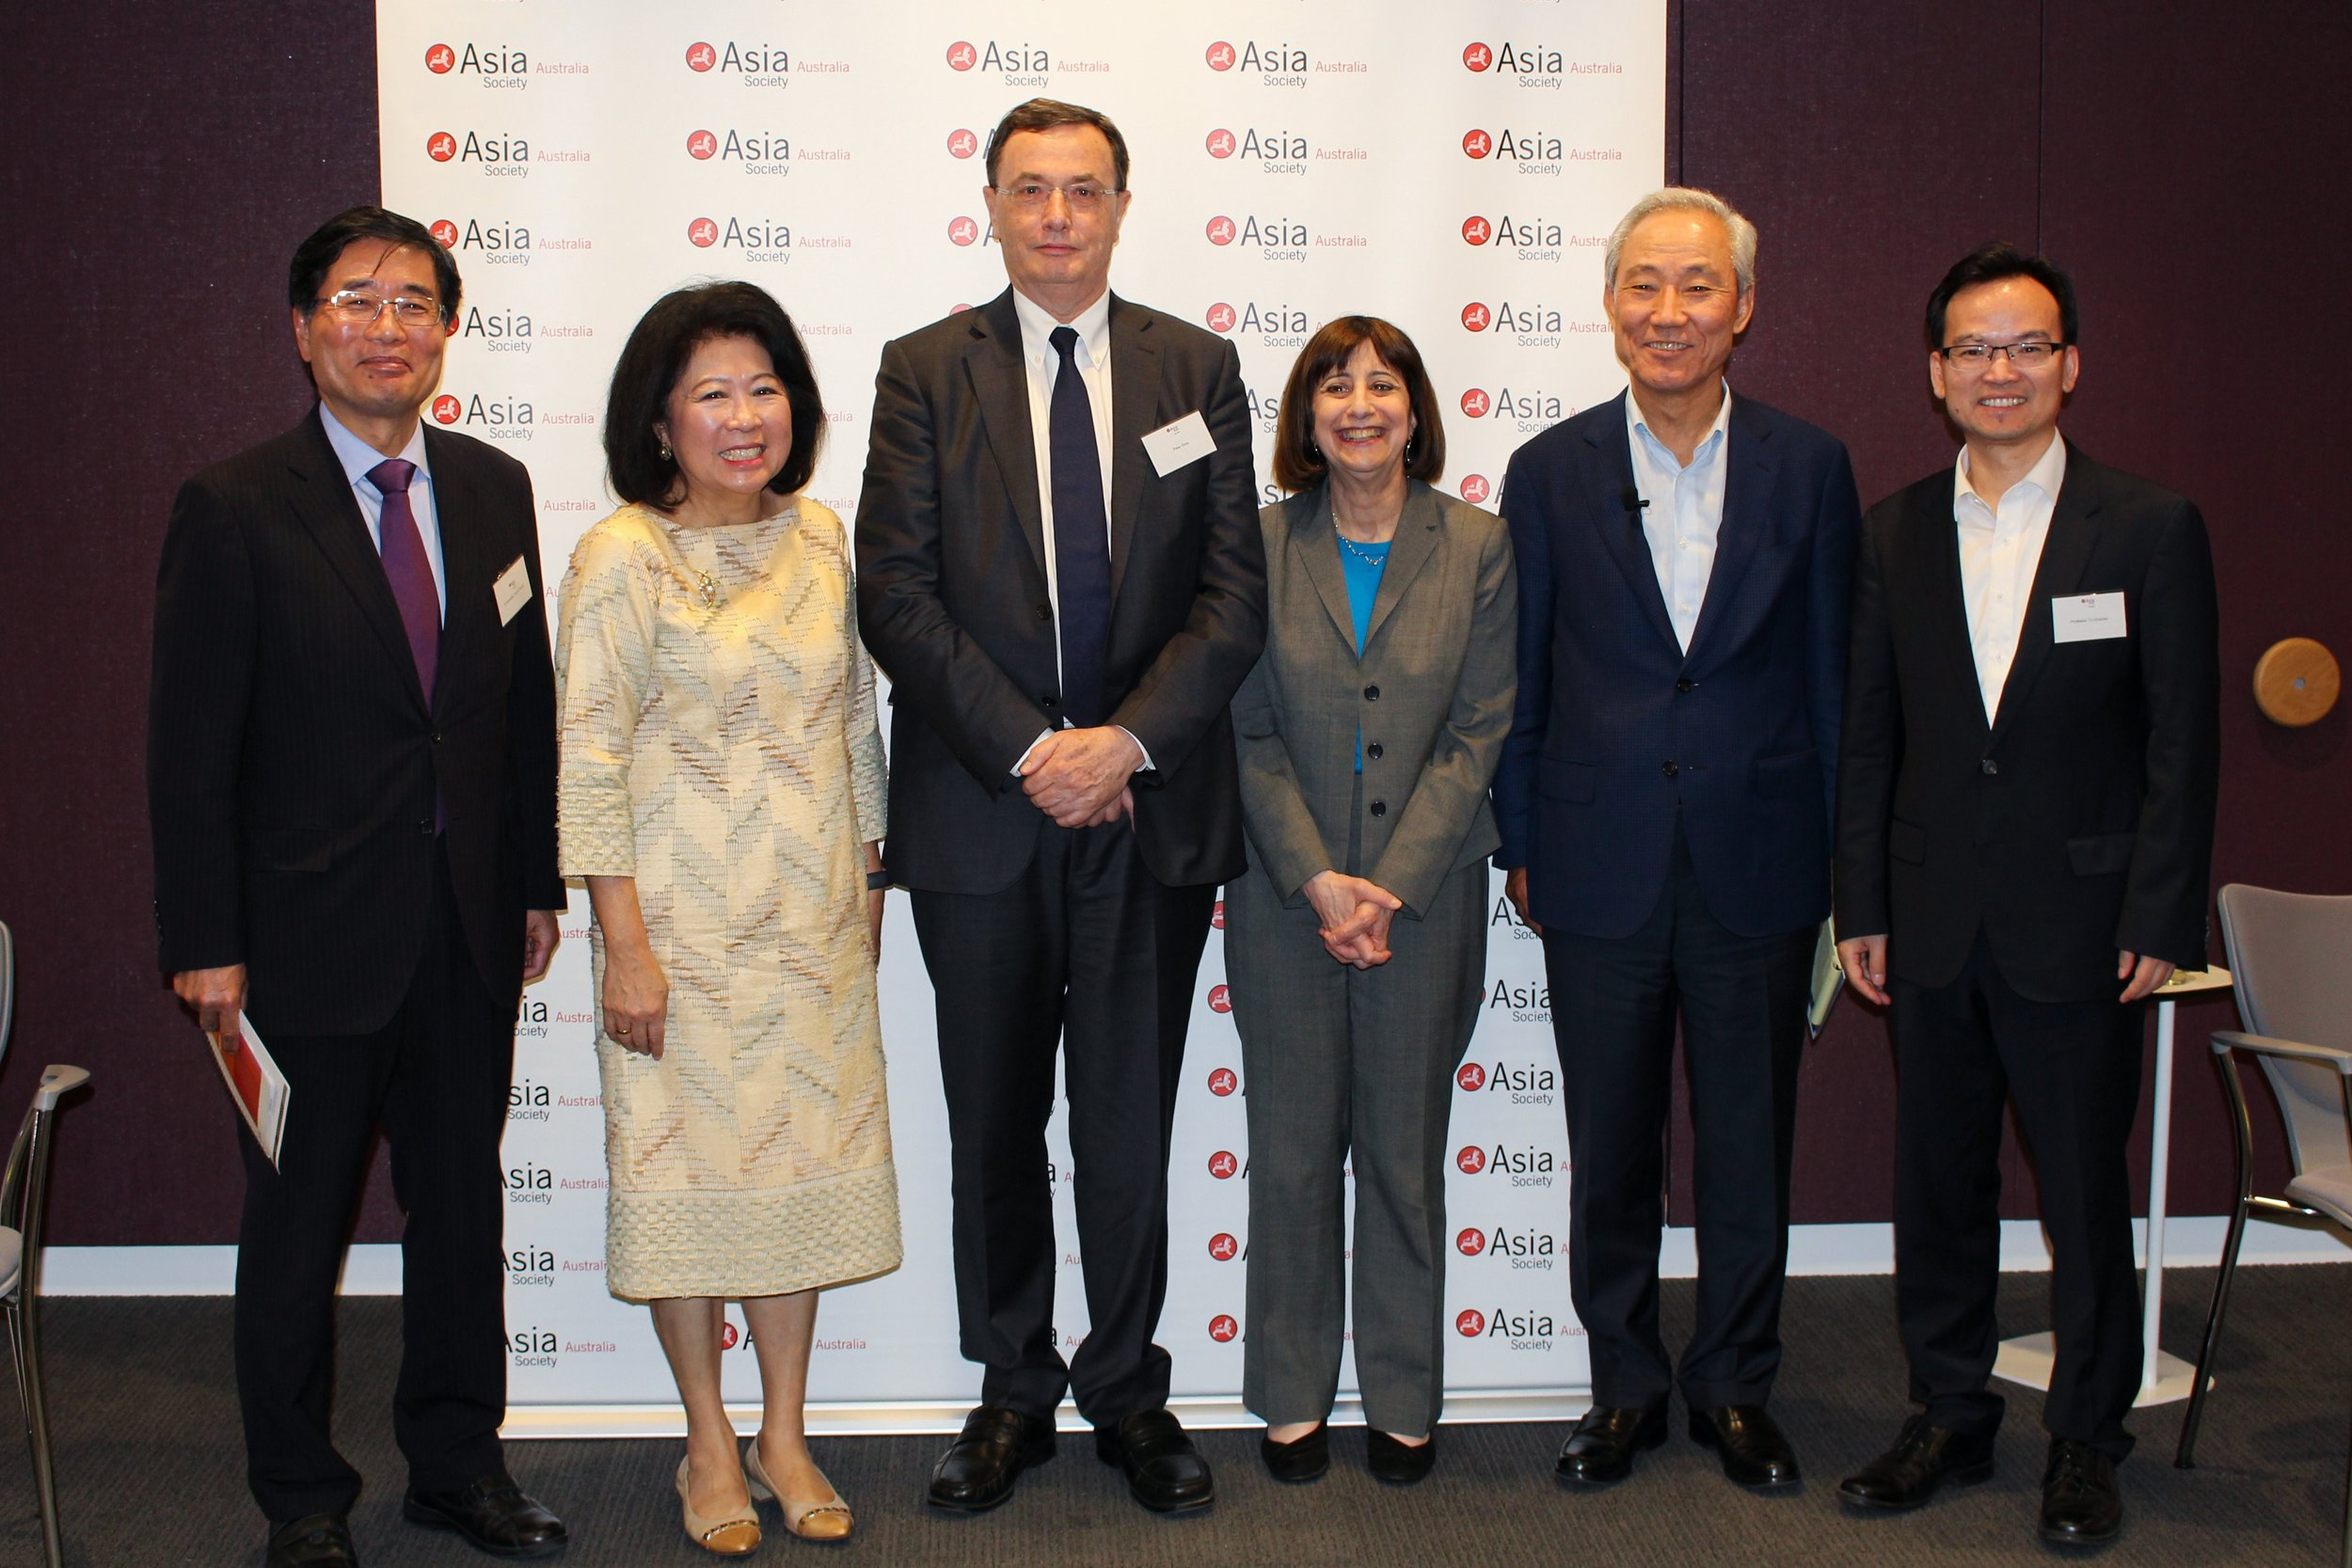 From left: Ambassador Yoichi Suzuki, Dr Mari Pangestu, Peter Grey, Wendy Cutler (Chair), Kim Jong-Hoon, Professor Tu Xinquan during their week-long visit to Australia. (Source: Asia Society Policy Institute)